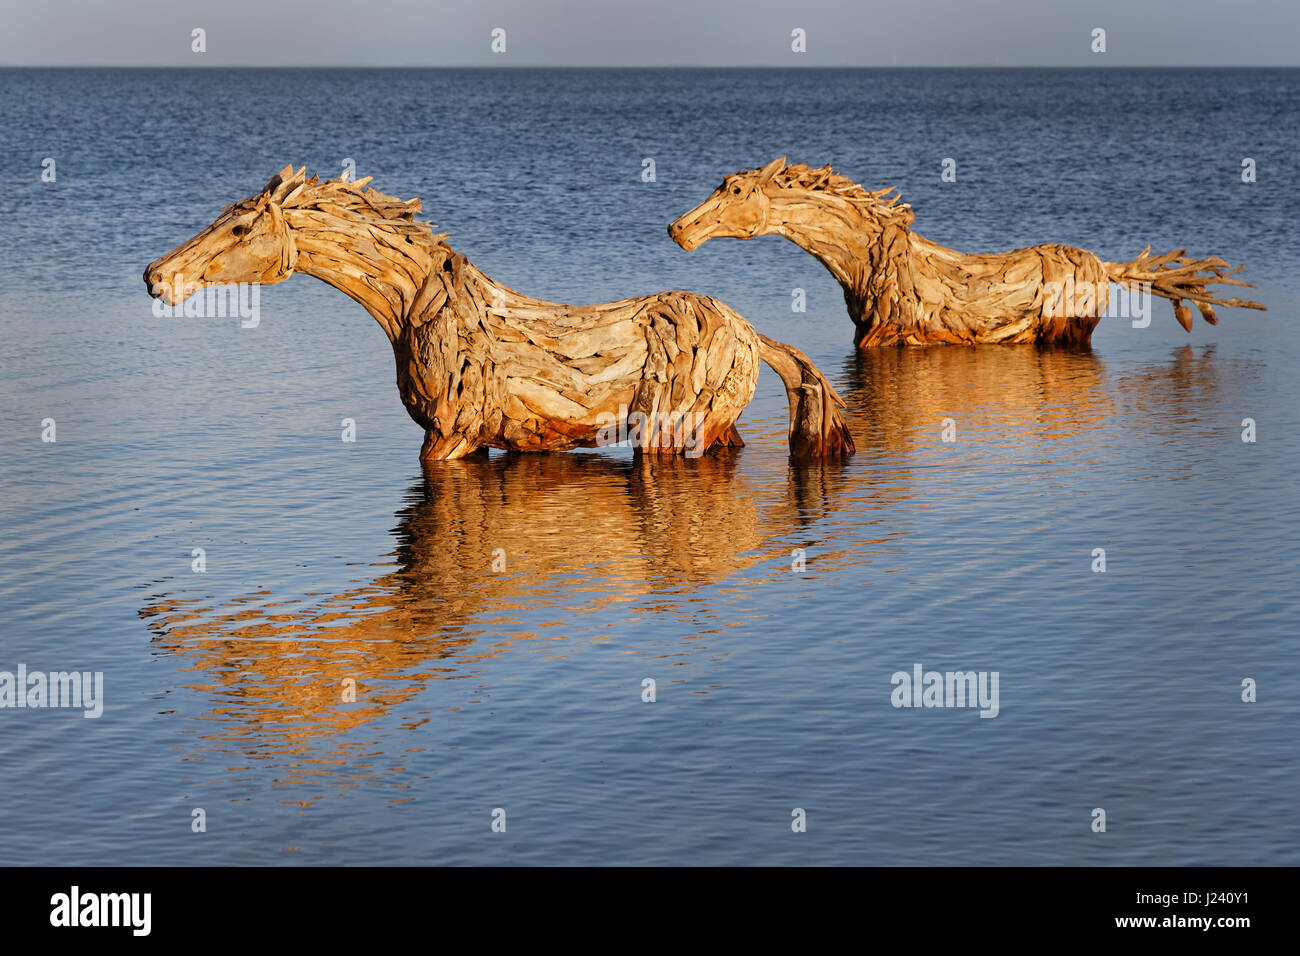 Art at Sylt, Horses made by straw, Schleswig-Holstein, Germany, Europe - Stock Image